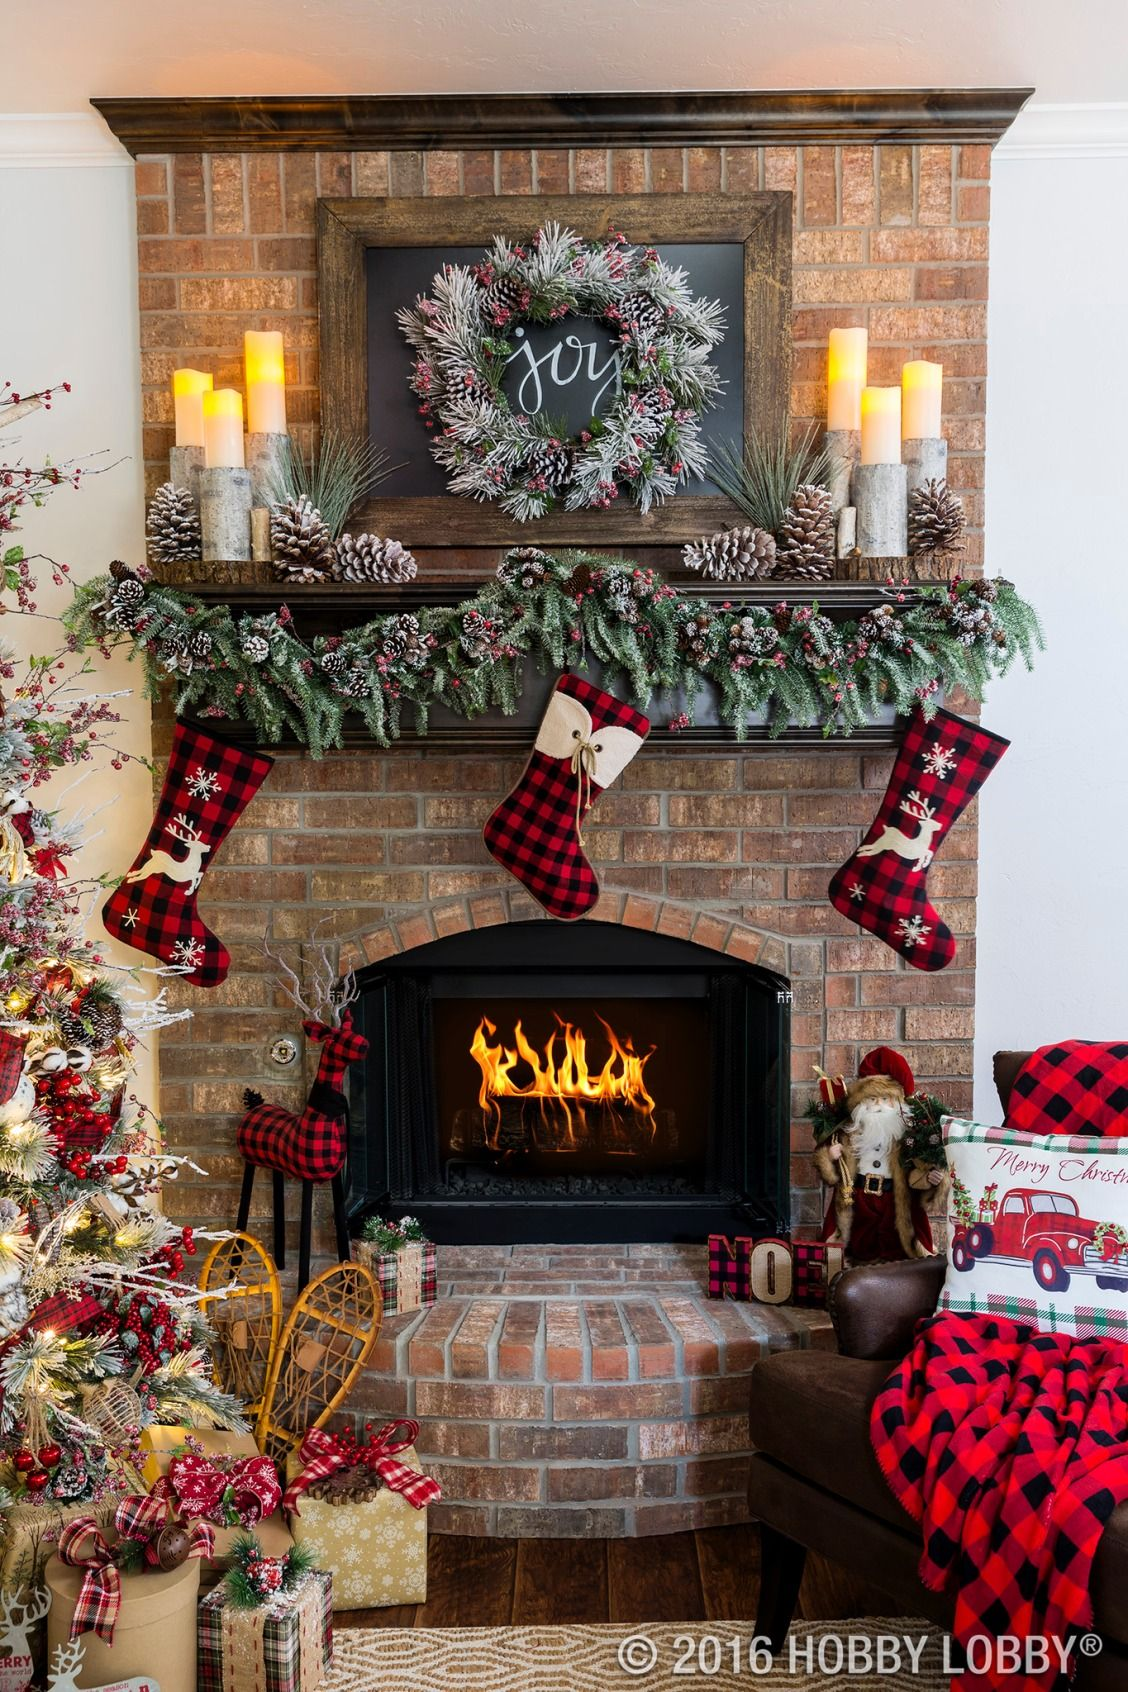 cozy cabin charm meets traditional holiday by coupling warm and rustic accent pieces with elegant christmas decor - Cabins Decorated For Christmas